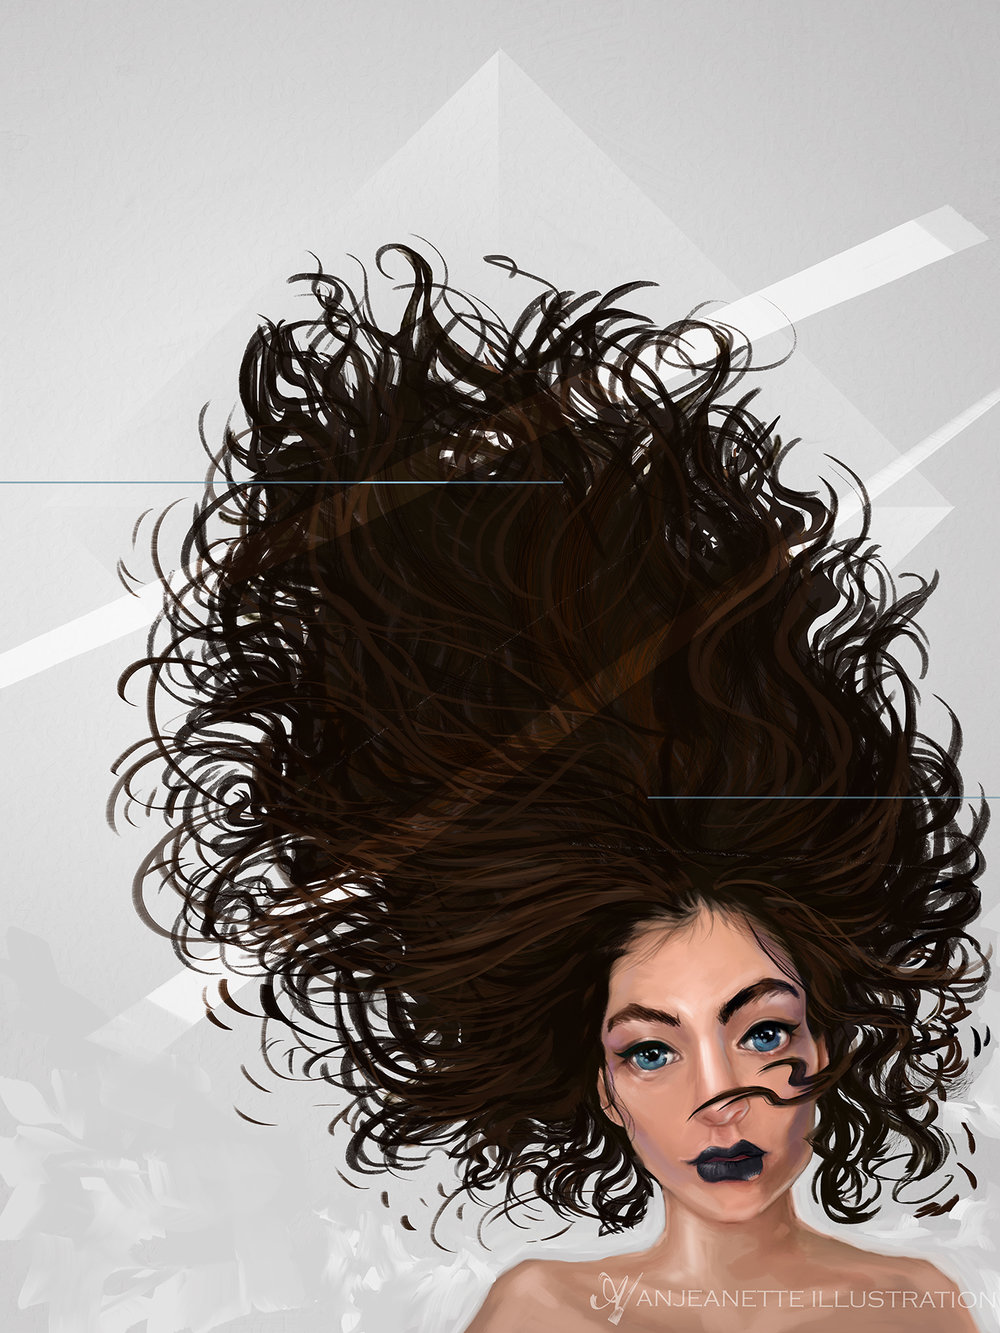 Lorde Digital Painting by  A  njeanette Illustration